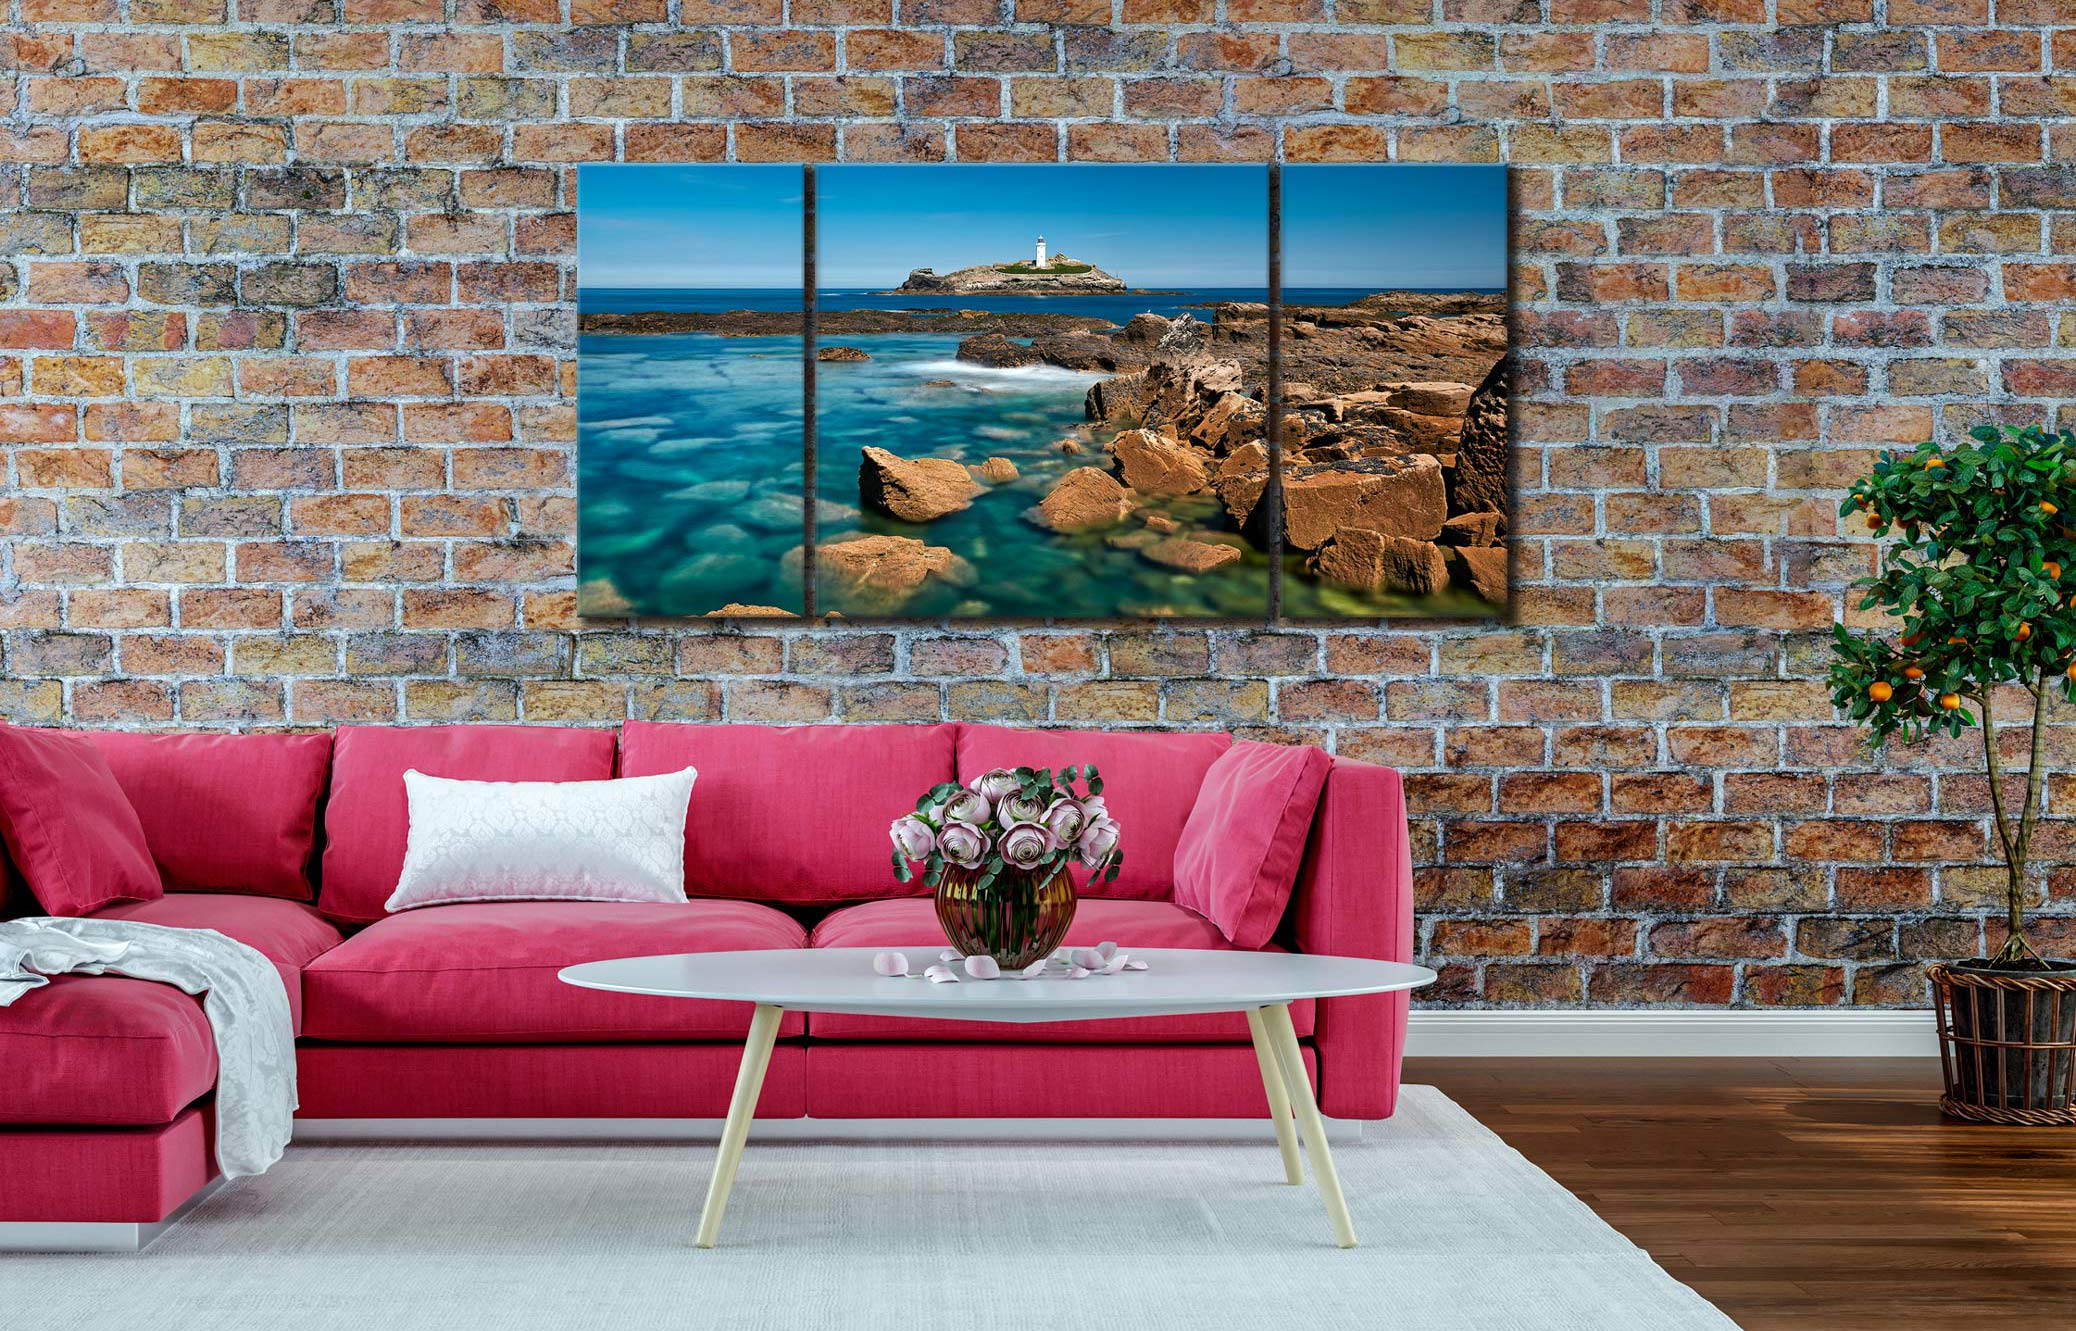 Calm Waters of Godrevy Point - 3 Panel Wide Centre Canvas on Wall